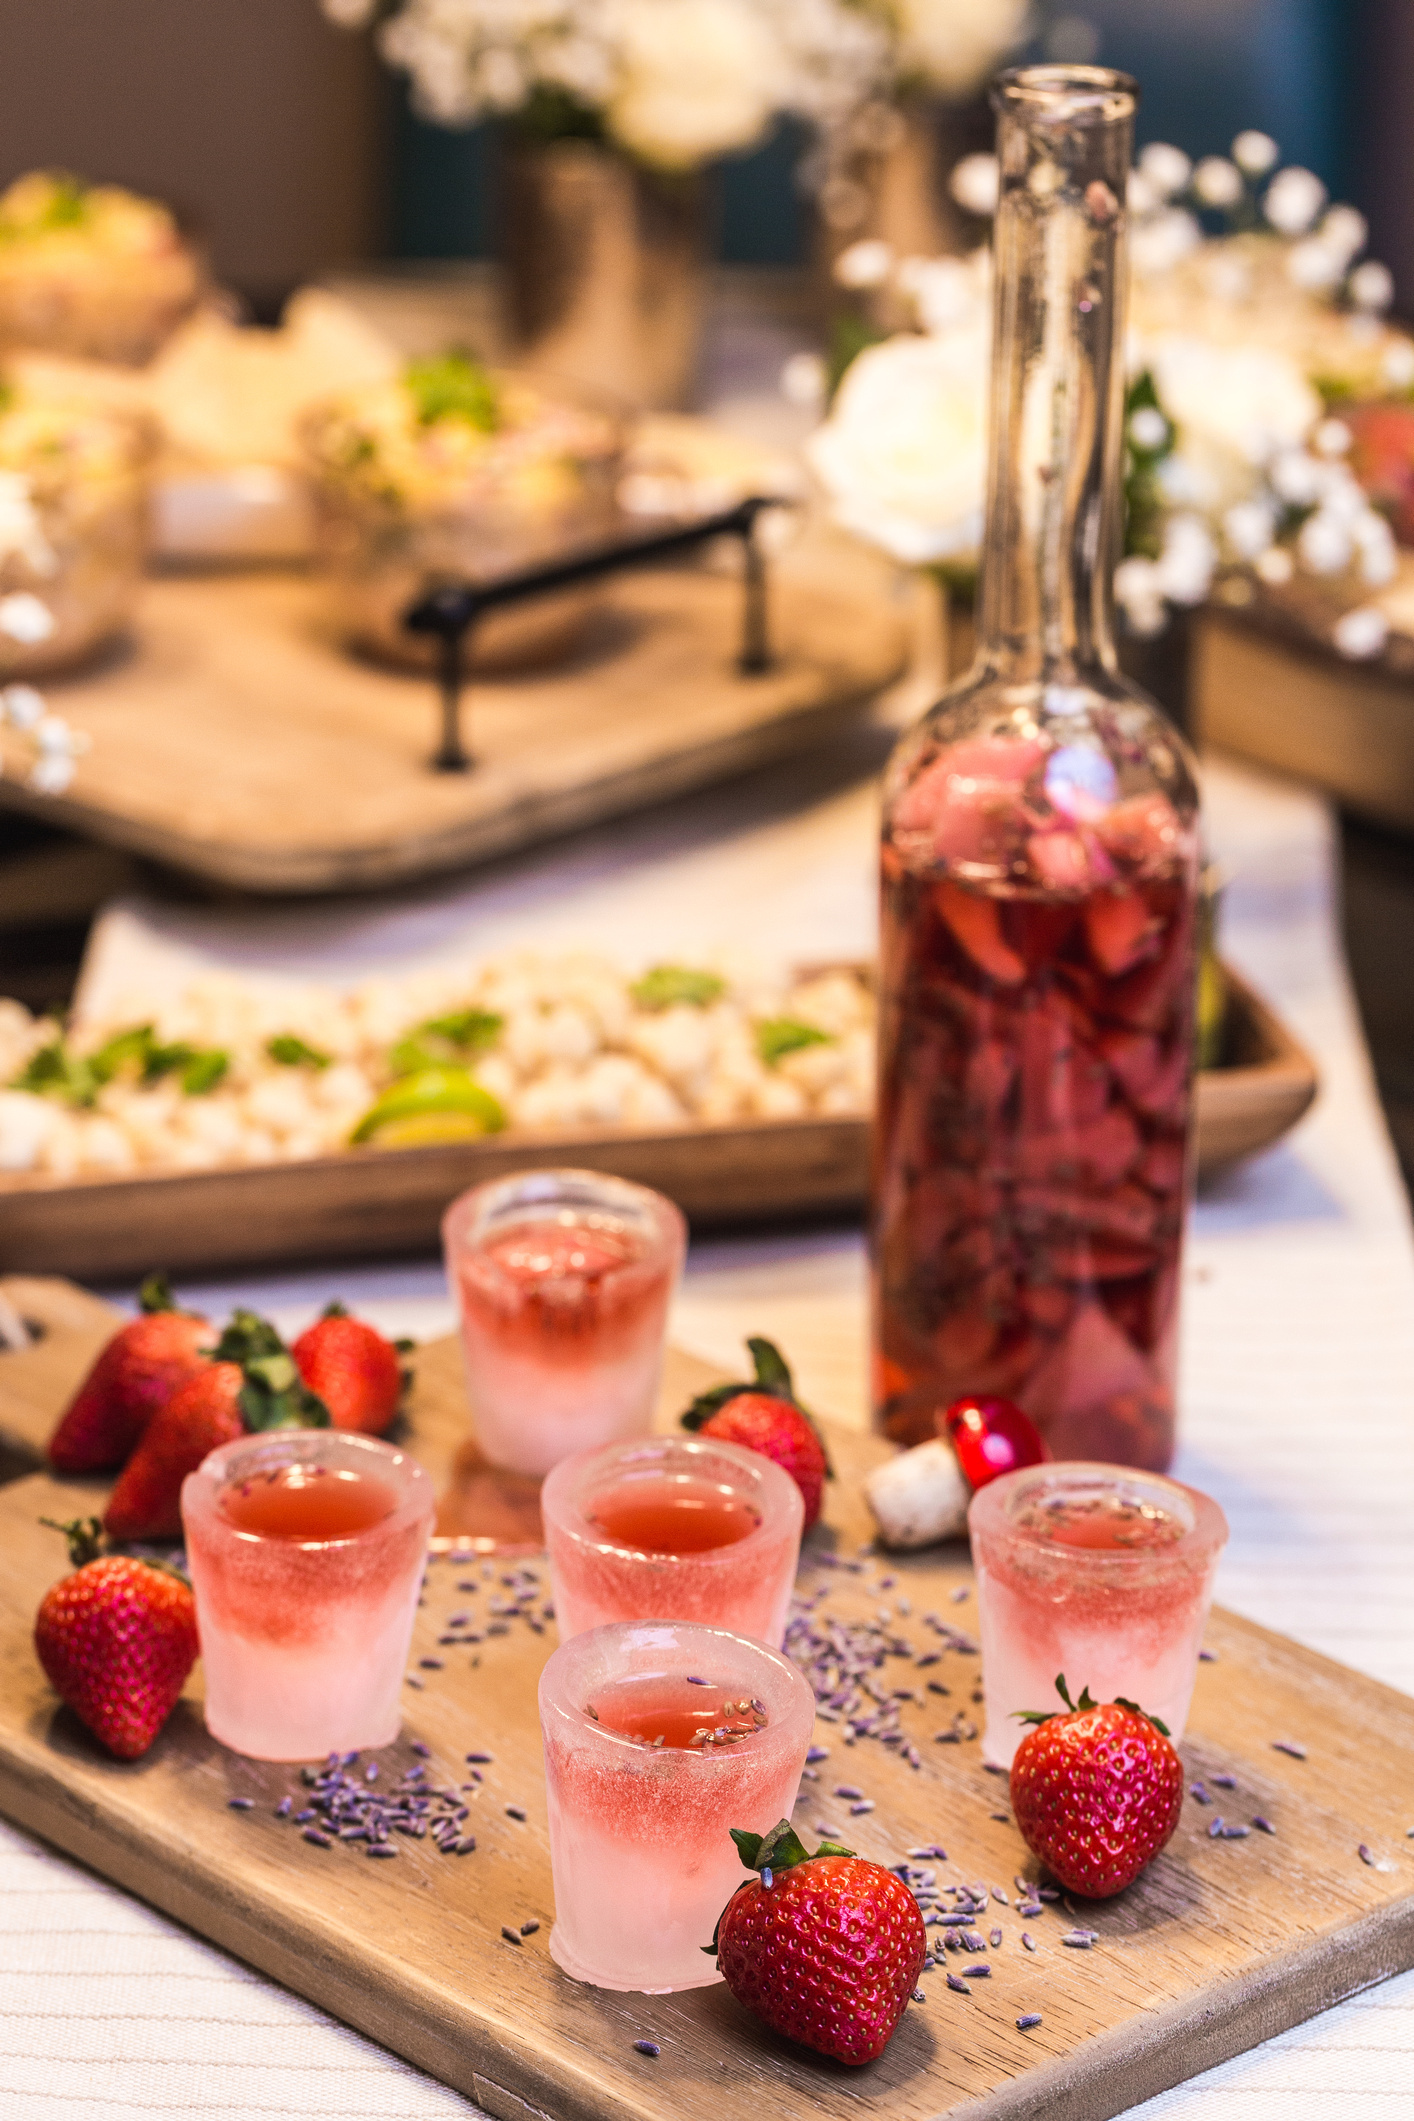 Regaling How To Make Strawberry Lavender Infused Tequila How To Make Strawberry Lavender Infused Tequila Life How To Make Tequila Rose How To Make Tequila Soda nice food How To Make Tequila